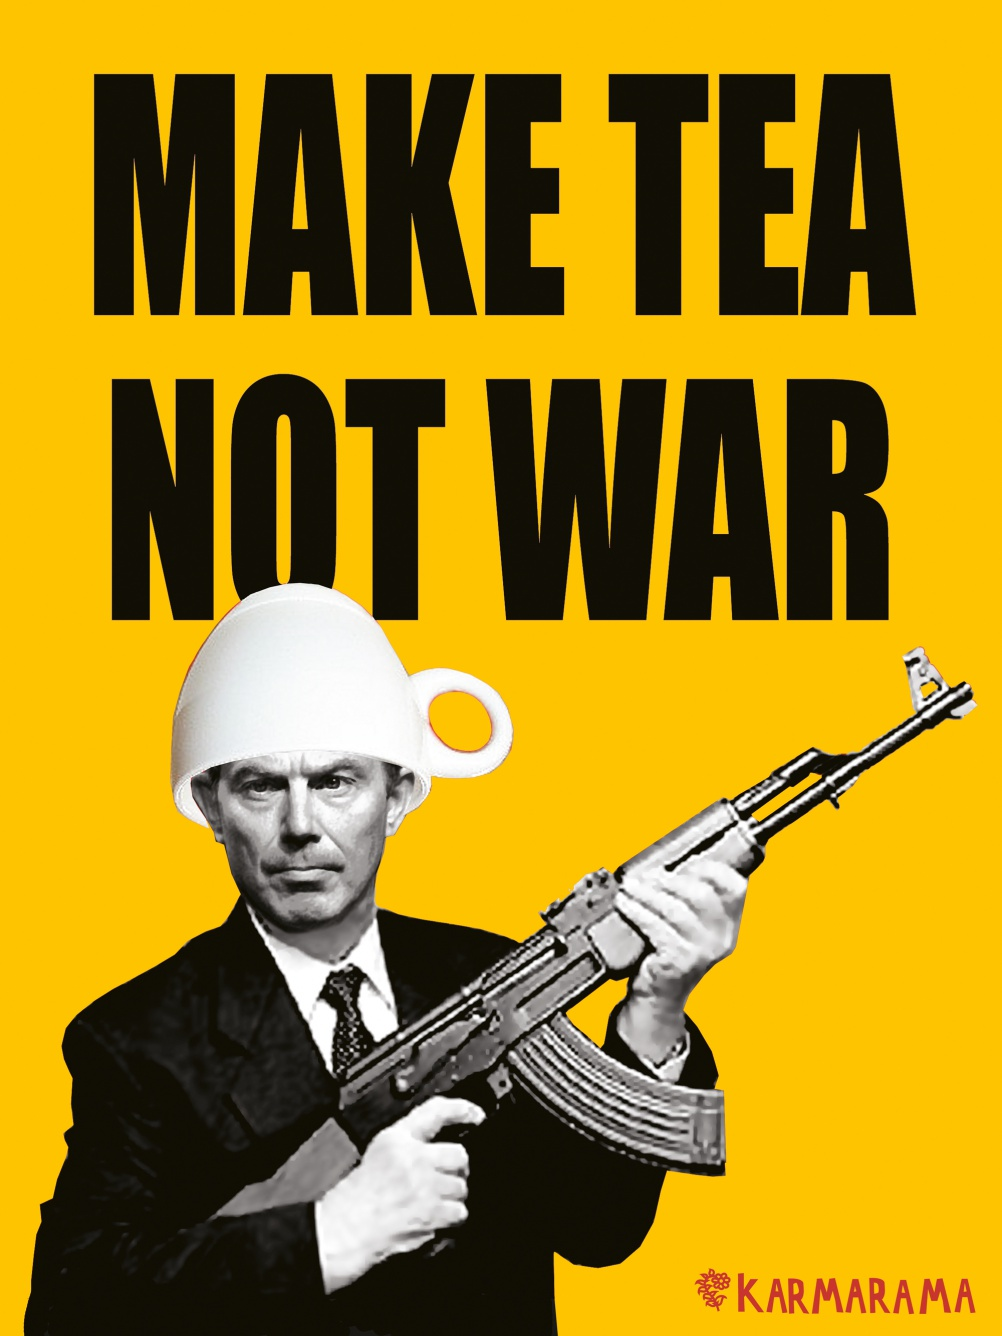 Make Tea Not War, poster by ad agency Karmarama, UK 2003